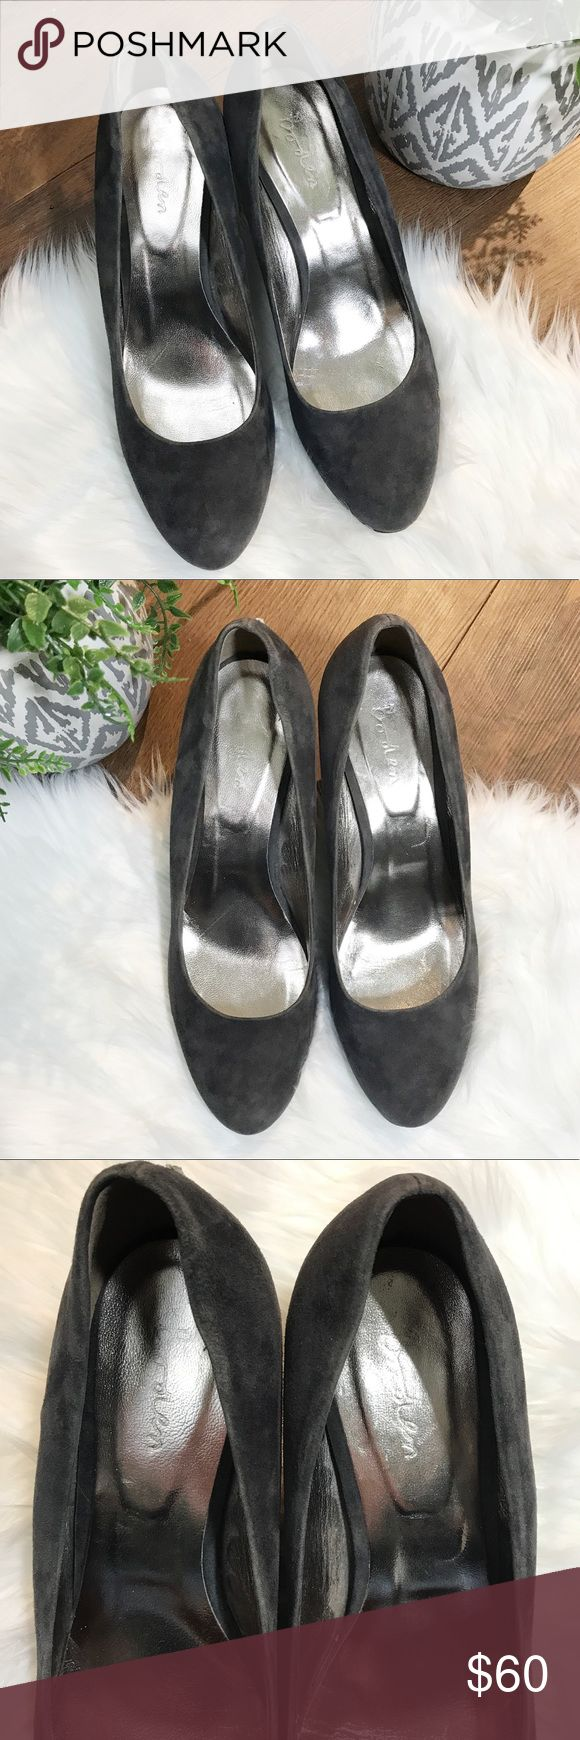 """BODEN gray suede heels size 41 EUC Excellent used condition gorgeous gray suede heels from BODEN. Size 41 but runs small, please be familiar with BODEN sizing & see size chart in pictures. Minor wear to soles as pictured otherwise without flaws. 2.5"""" heel. Boden Shoes Heels"""